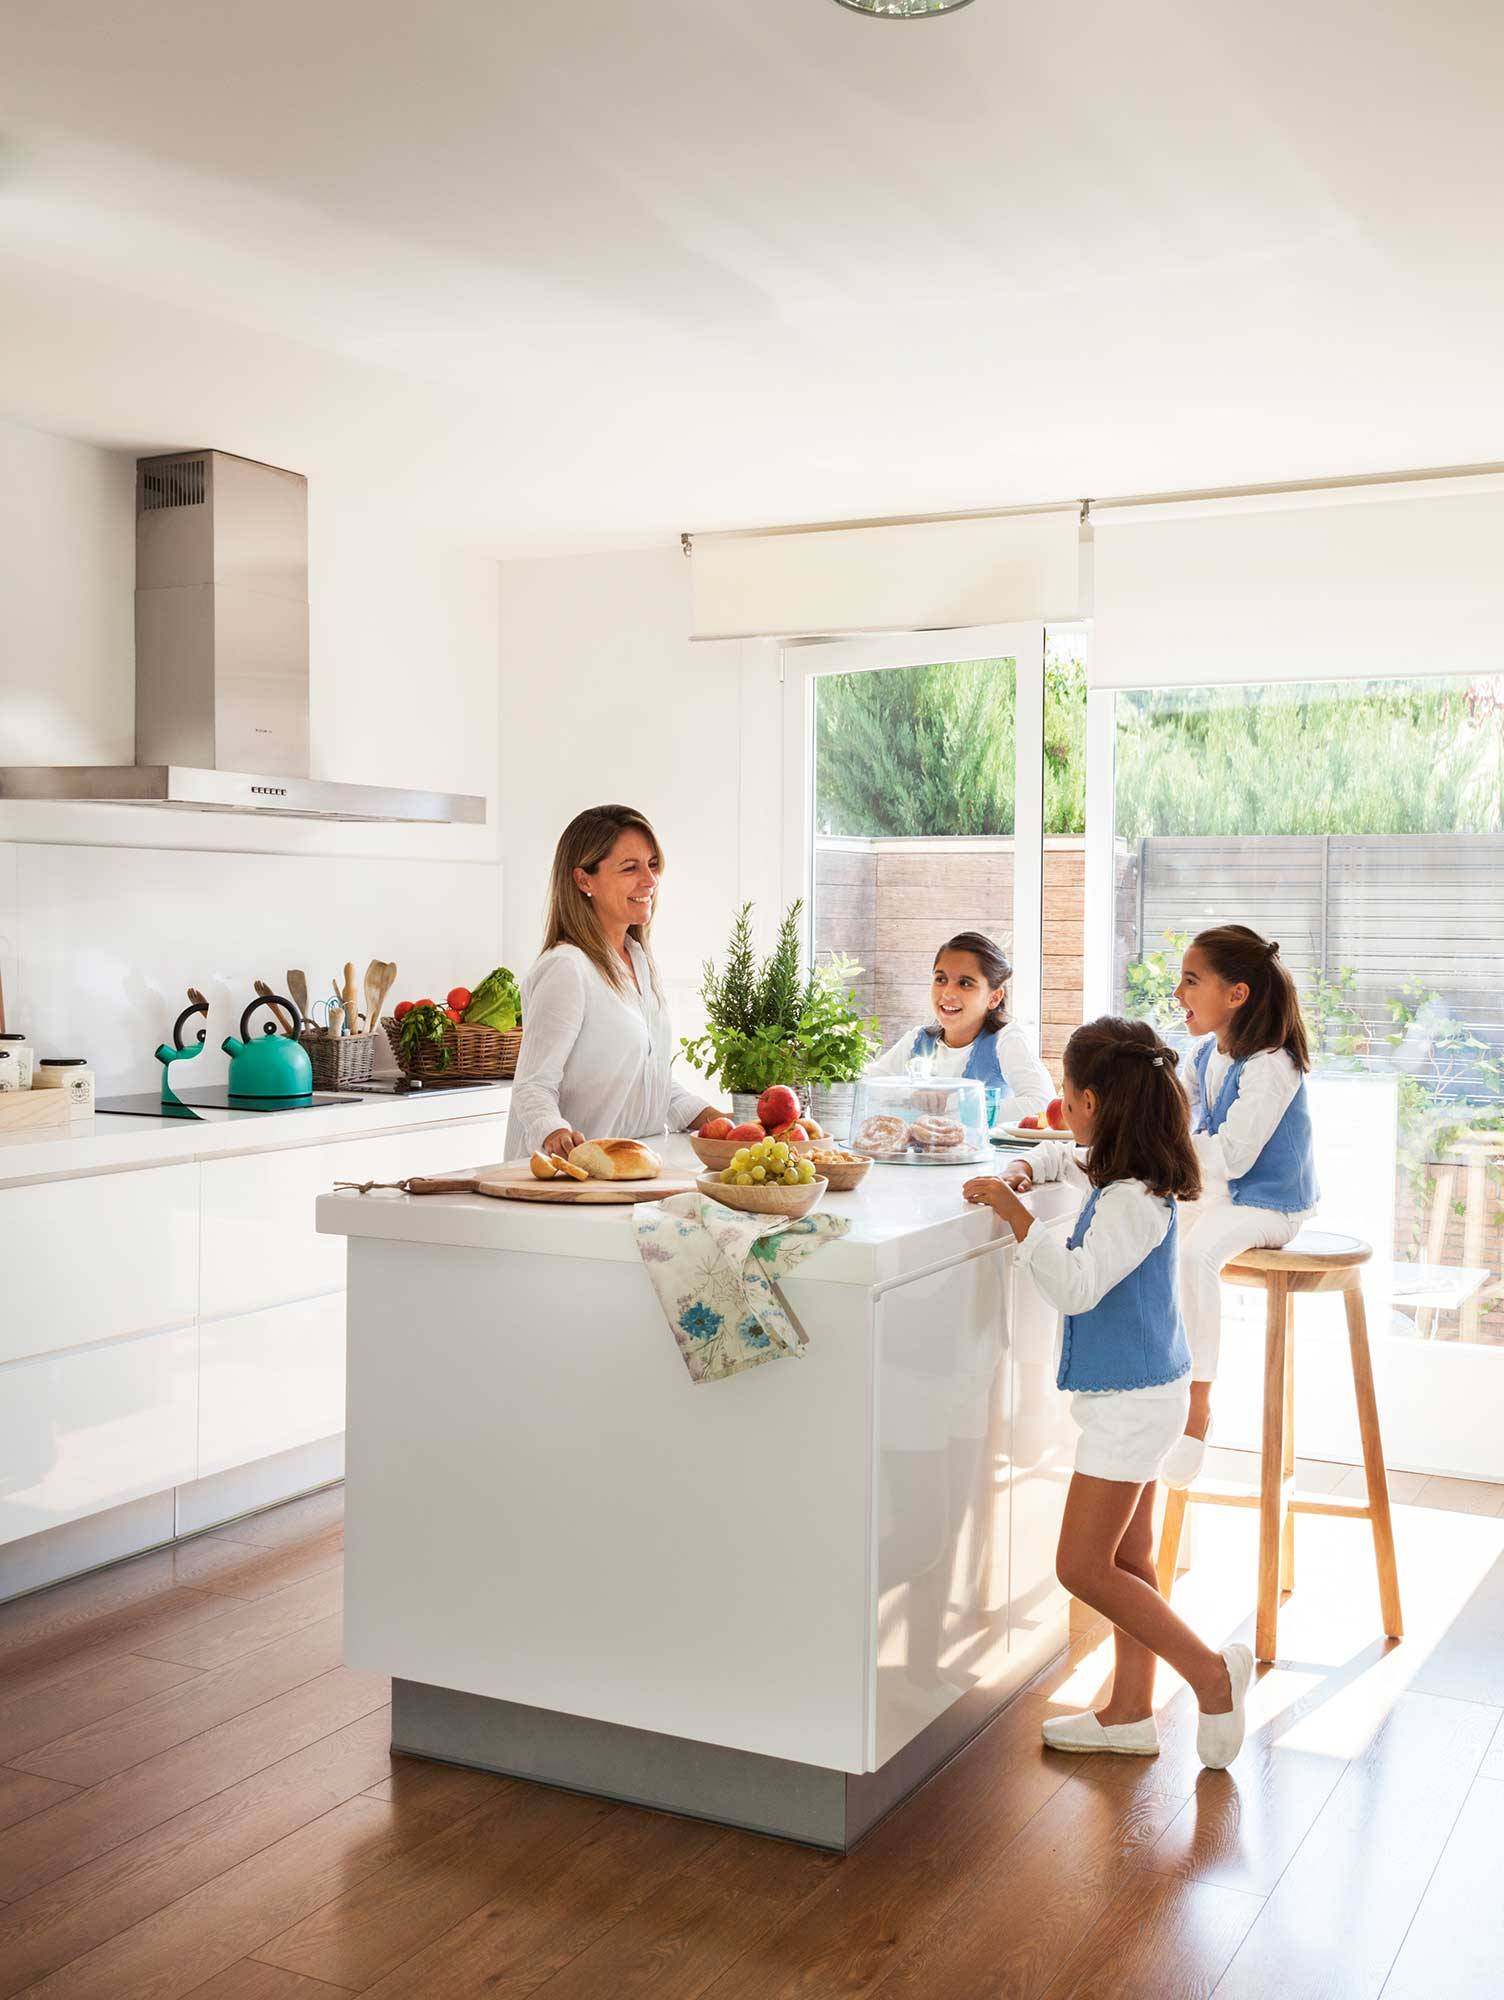 00412797. A kitchen designed for the whole family